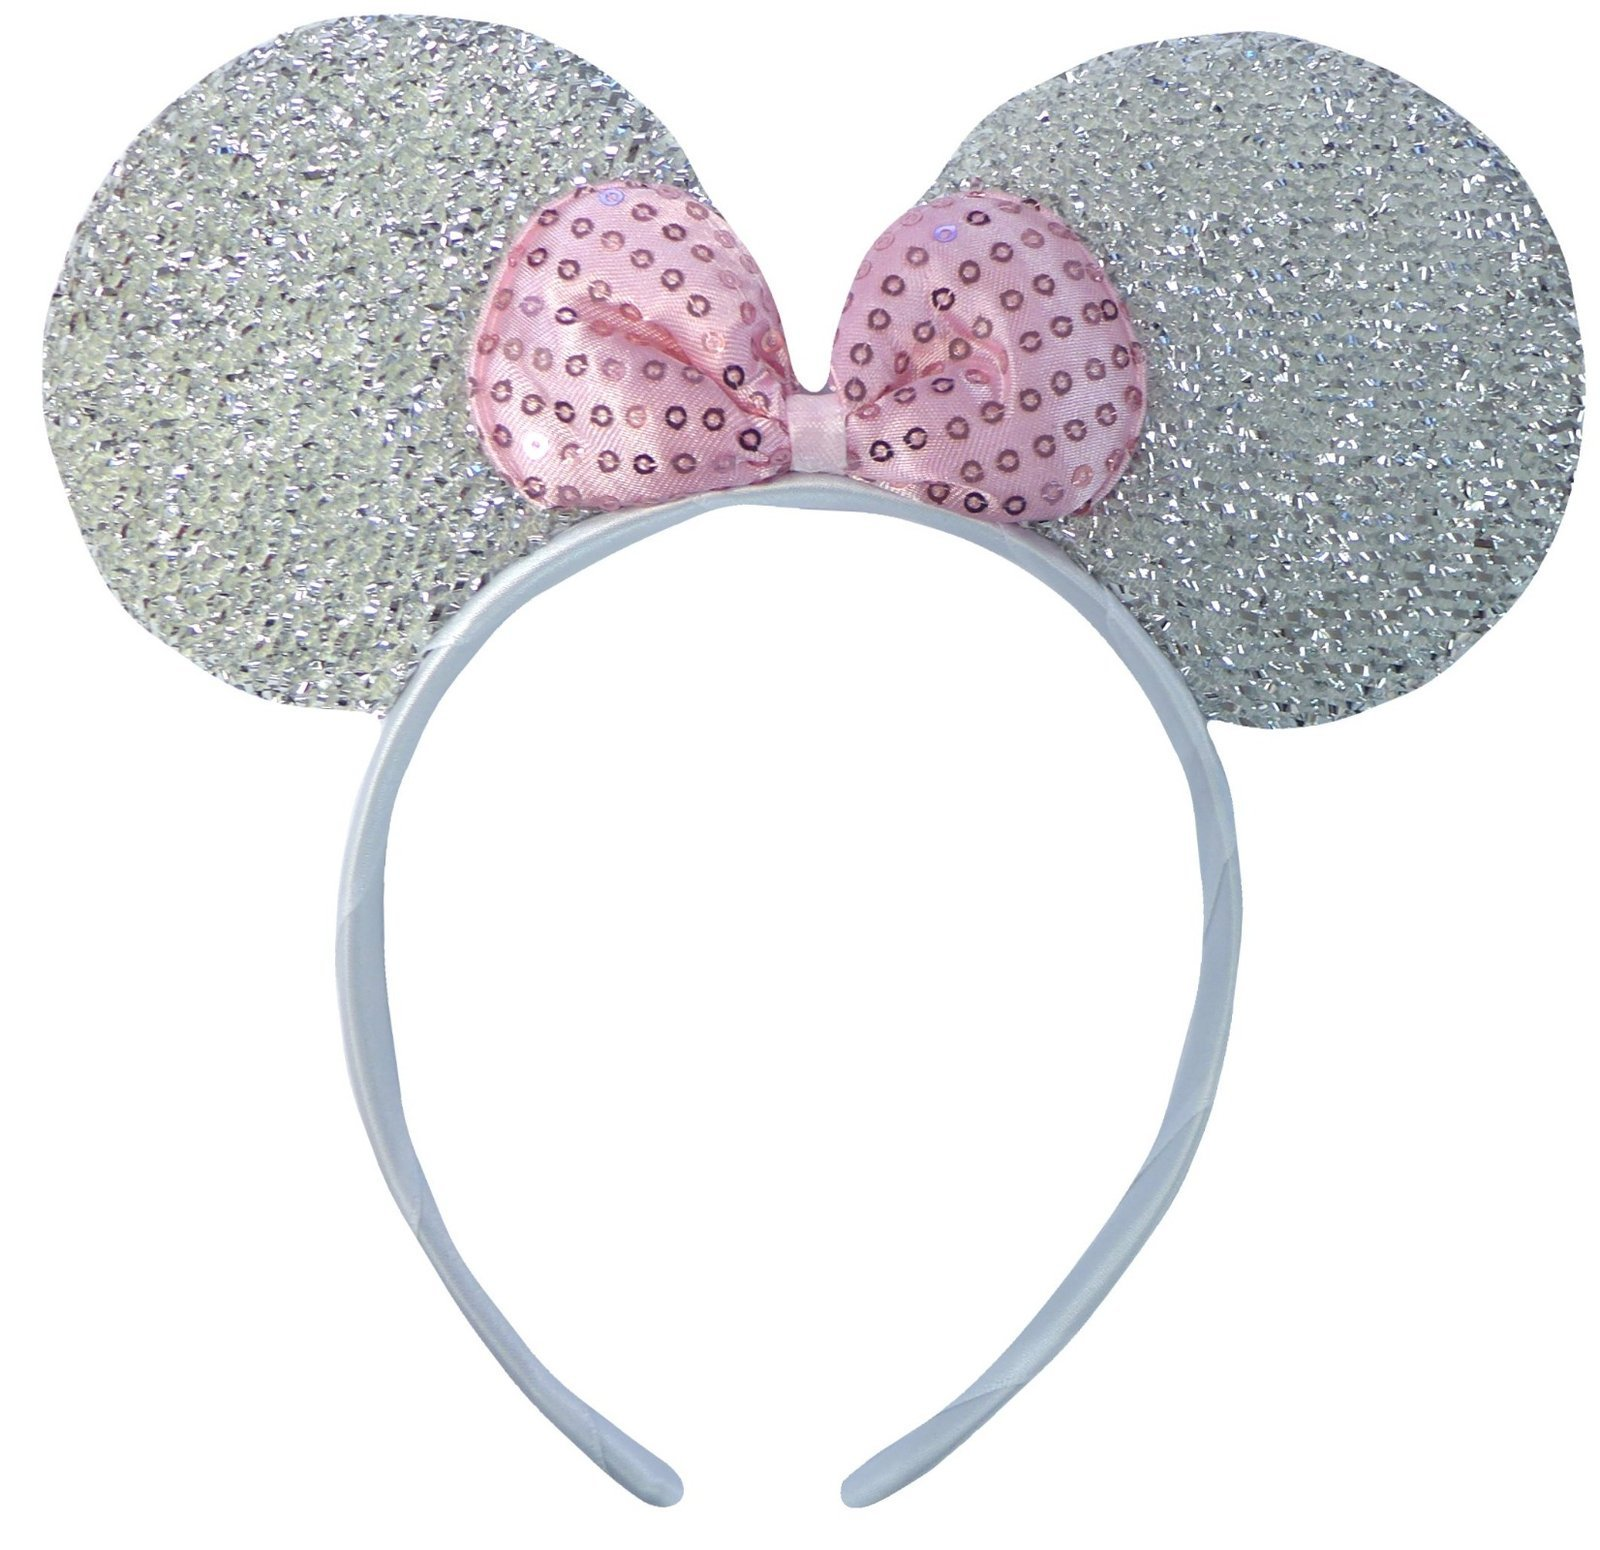 Sparkly Shimmering Black Red Sequin Bow Minnie Mouse Disney Fancy Dress Party Ears Headband by DangerousFX